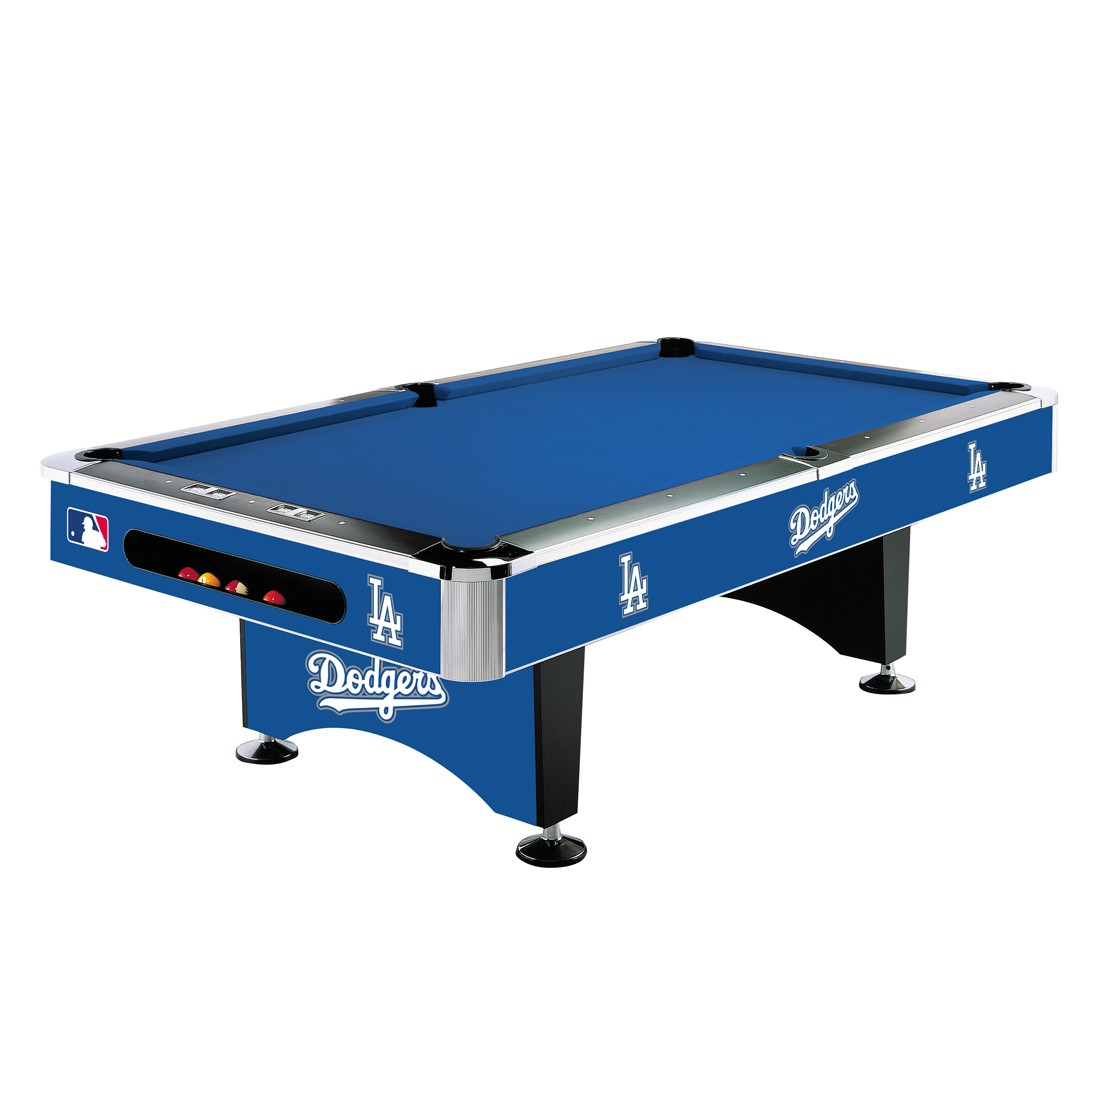 LOS ANGELES DODGERS 8-FT. POOL TABLE